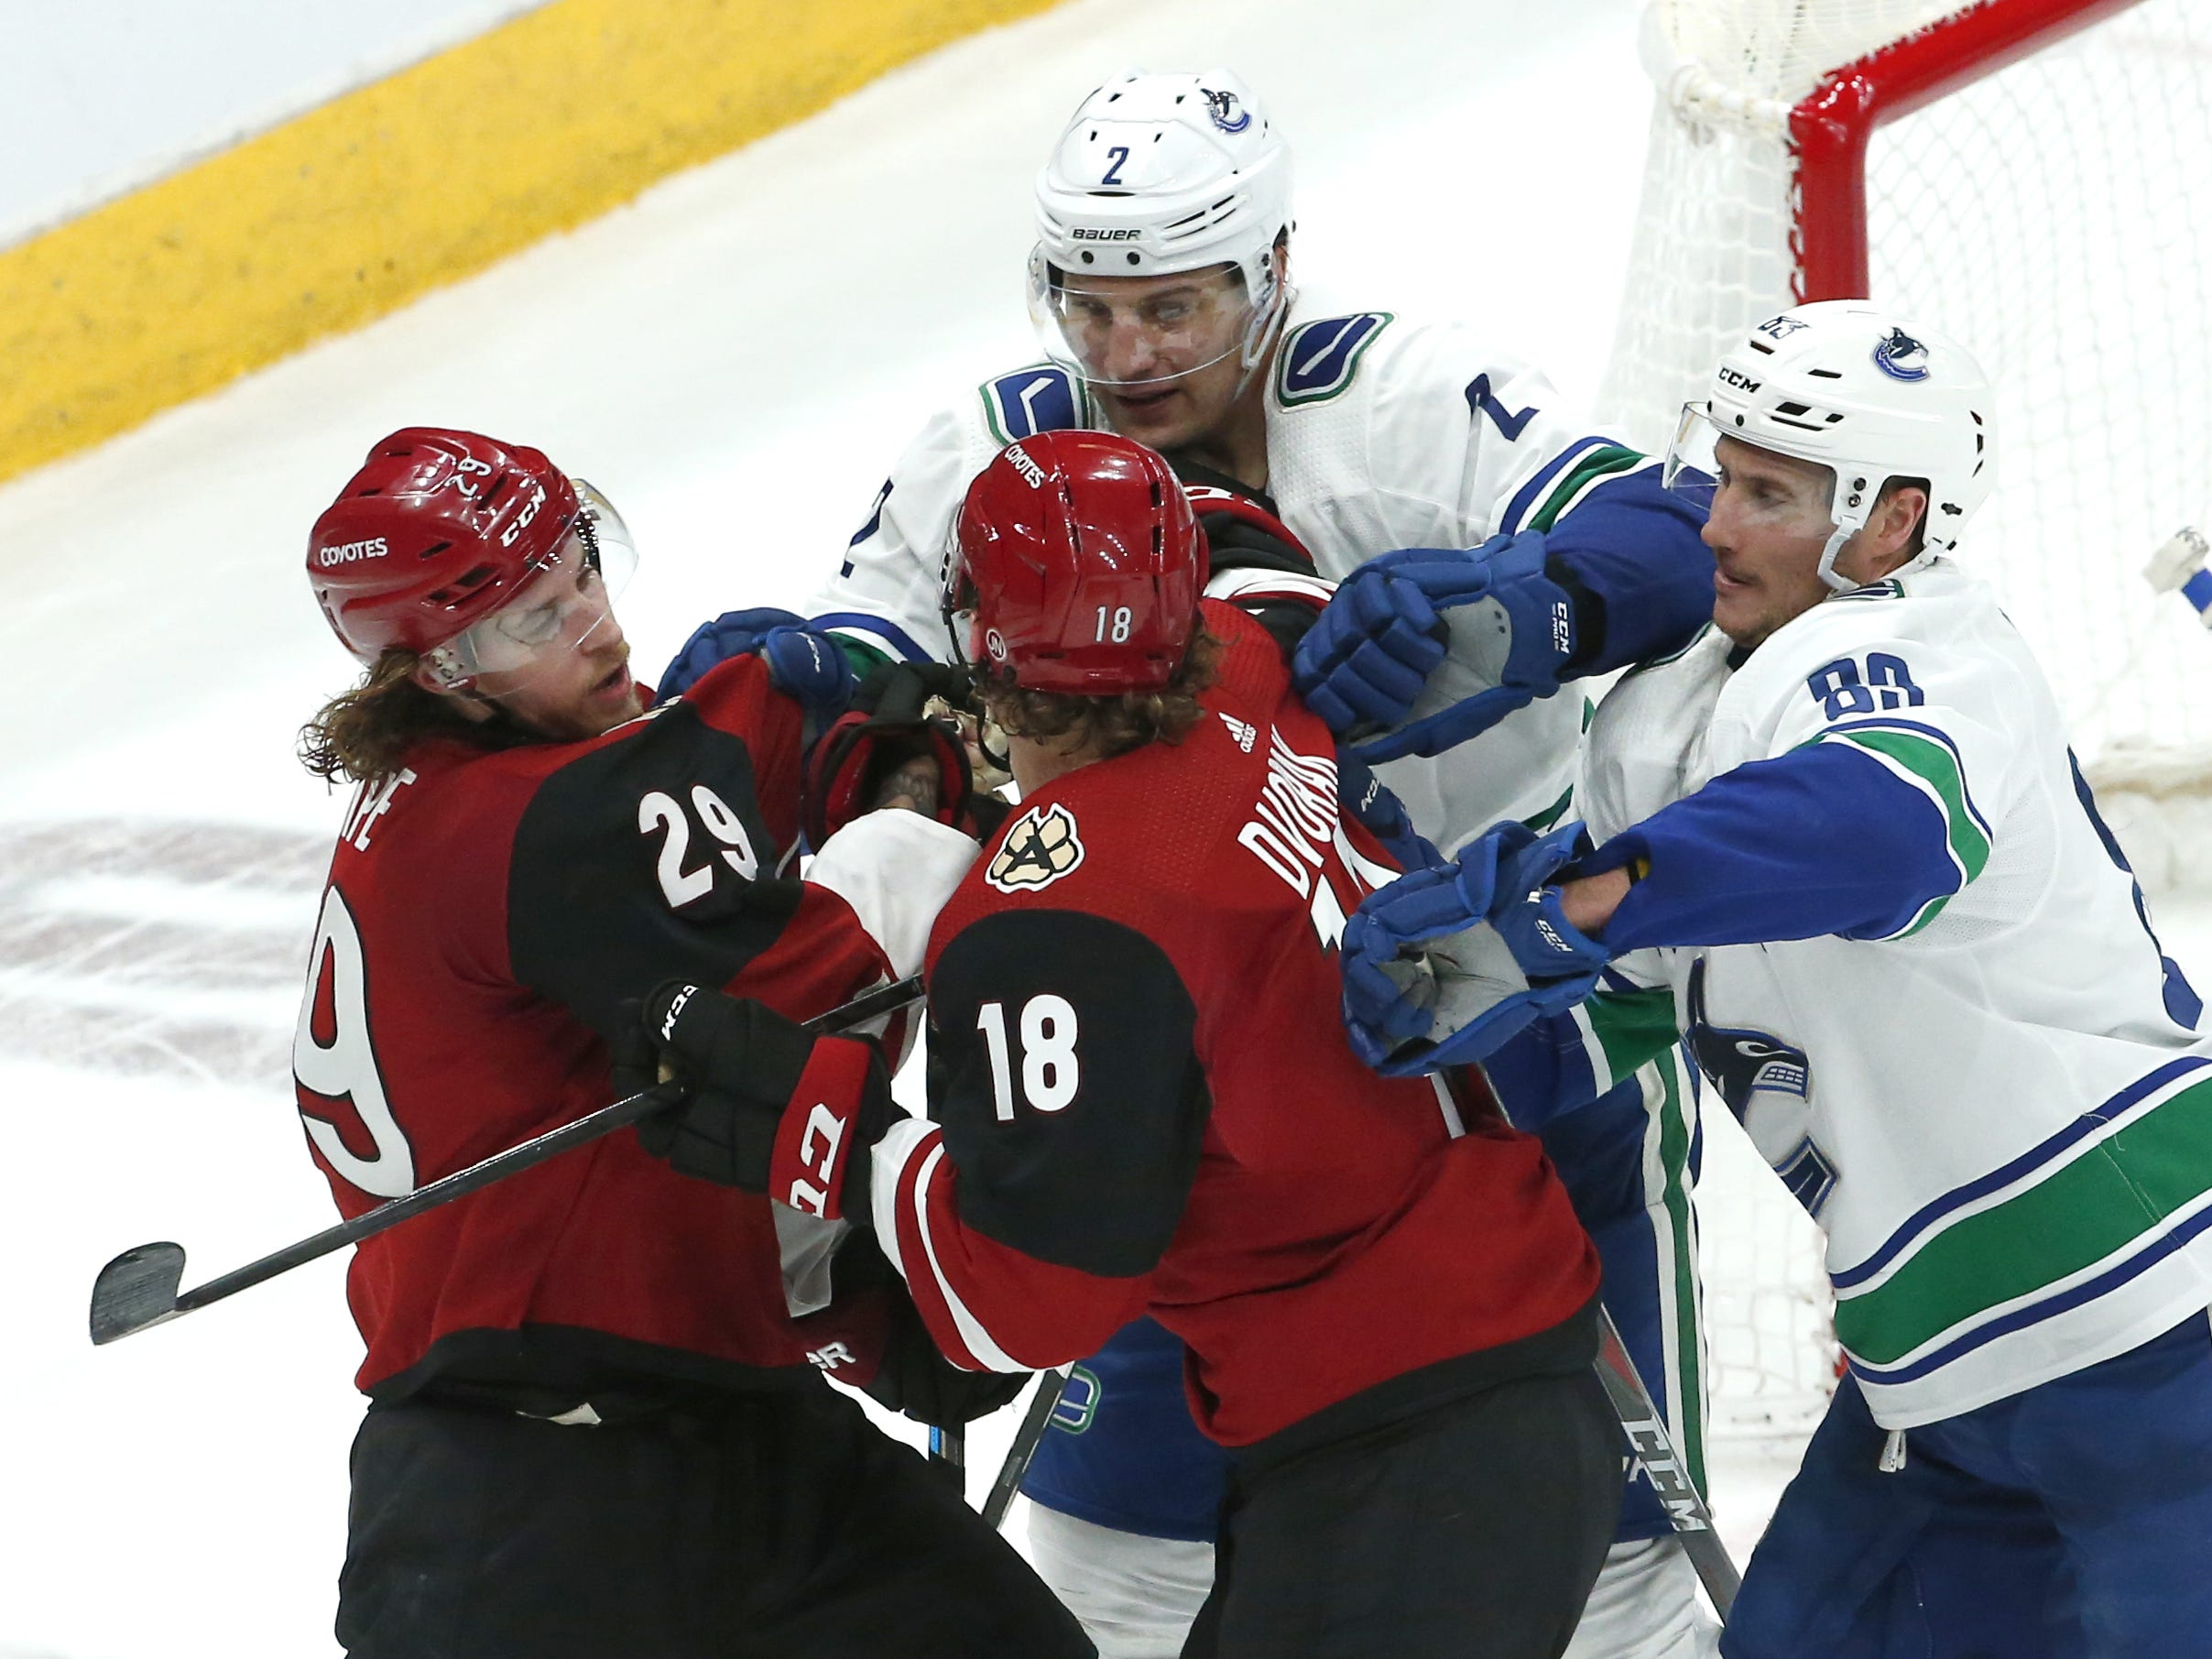 Arizona Coyotes right wing Mario Kempe (29) and center Christian Dvorak (18) get into a little pushing and shoving match with Vancouver Canucks defenseman Luke Schenn (2) and center Jay Beagle (83) during a NHL game at Gila River Arena in Glendale on February 28.